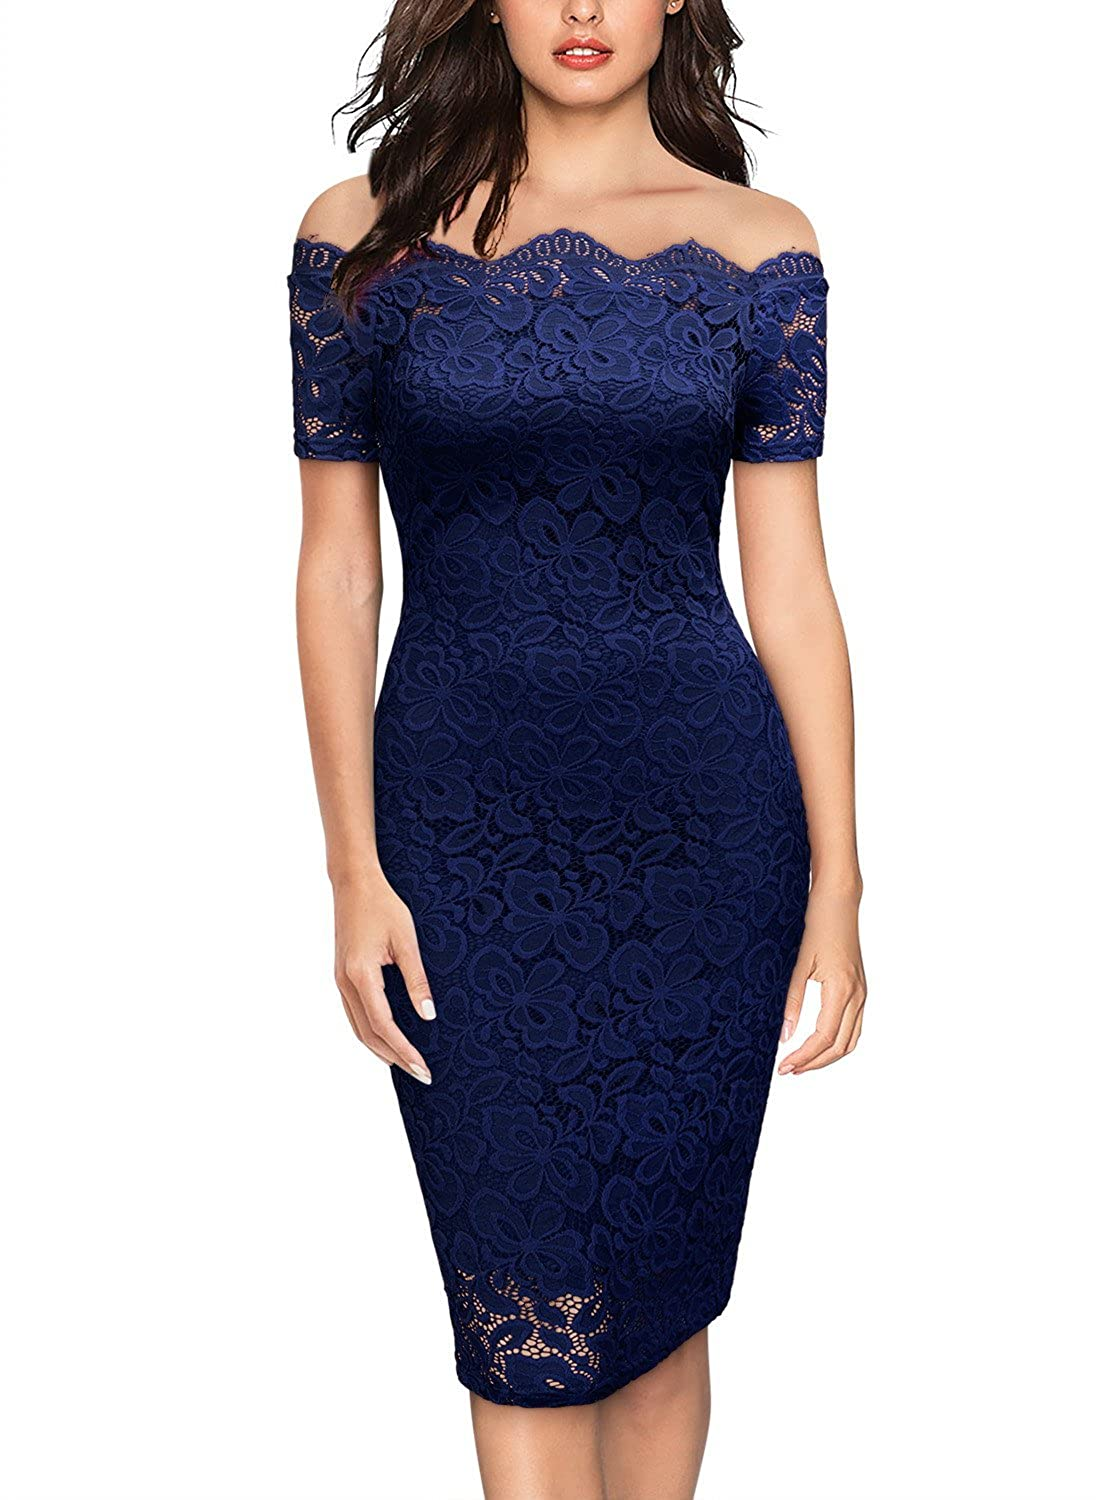 521a80c9322a Miusol Women s Vintage Off Shoulder Flare Lace Slim Cocktail Pencil Dress  at Amazon Women s Clothing store